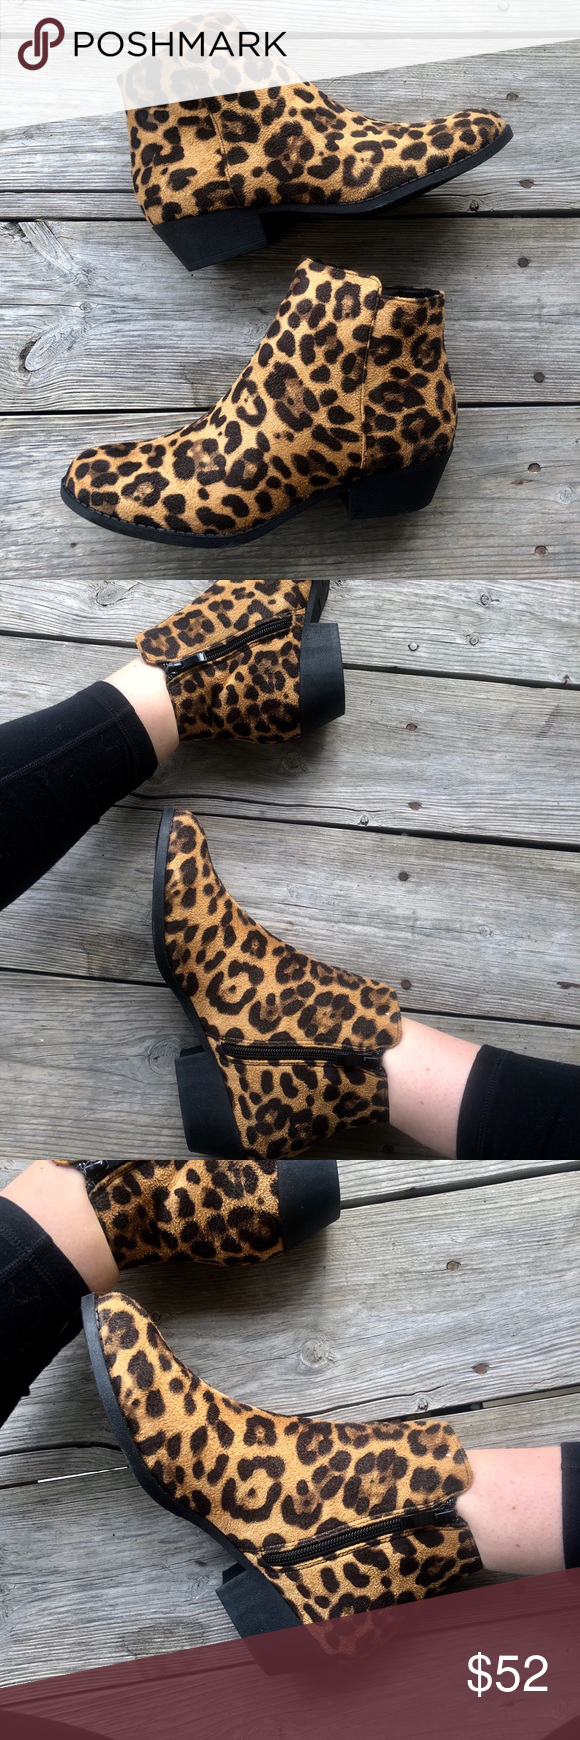 80fda0c56830 Cheetah print booties Cheetah print booties. Black sole Inside zip True to  size and so comfy. Faux fur feel Shoes Ankle Boots & Booties